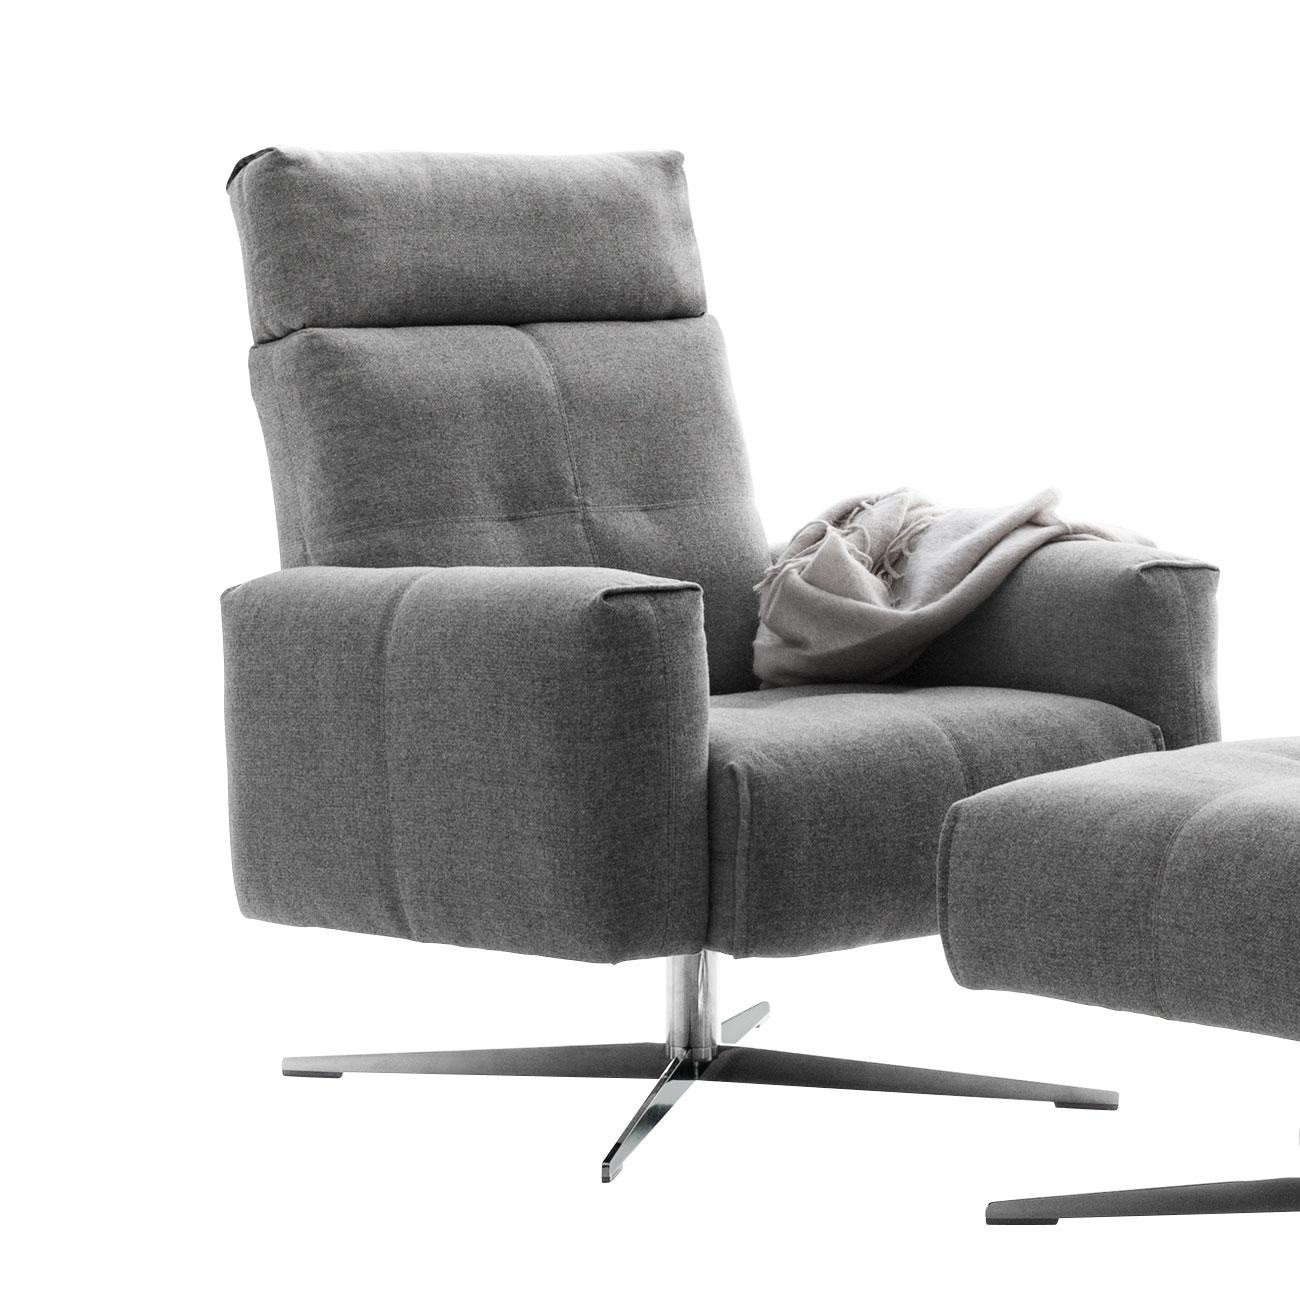 Rolf Benz Sessel Rolf Benz 50 Easy Chair